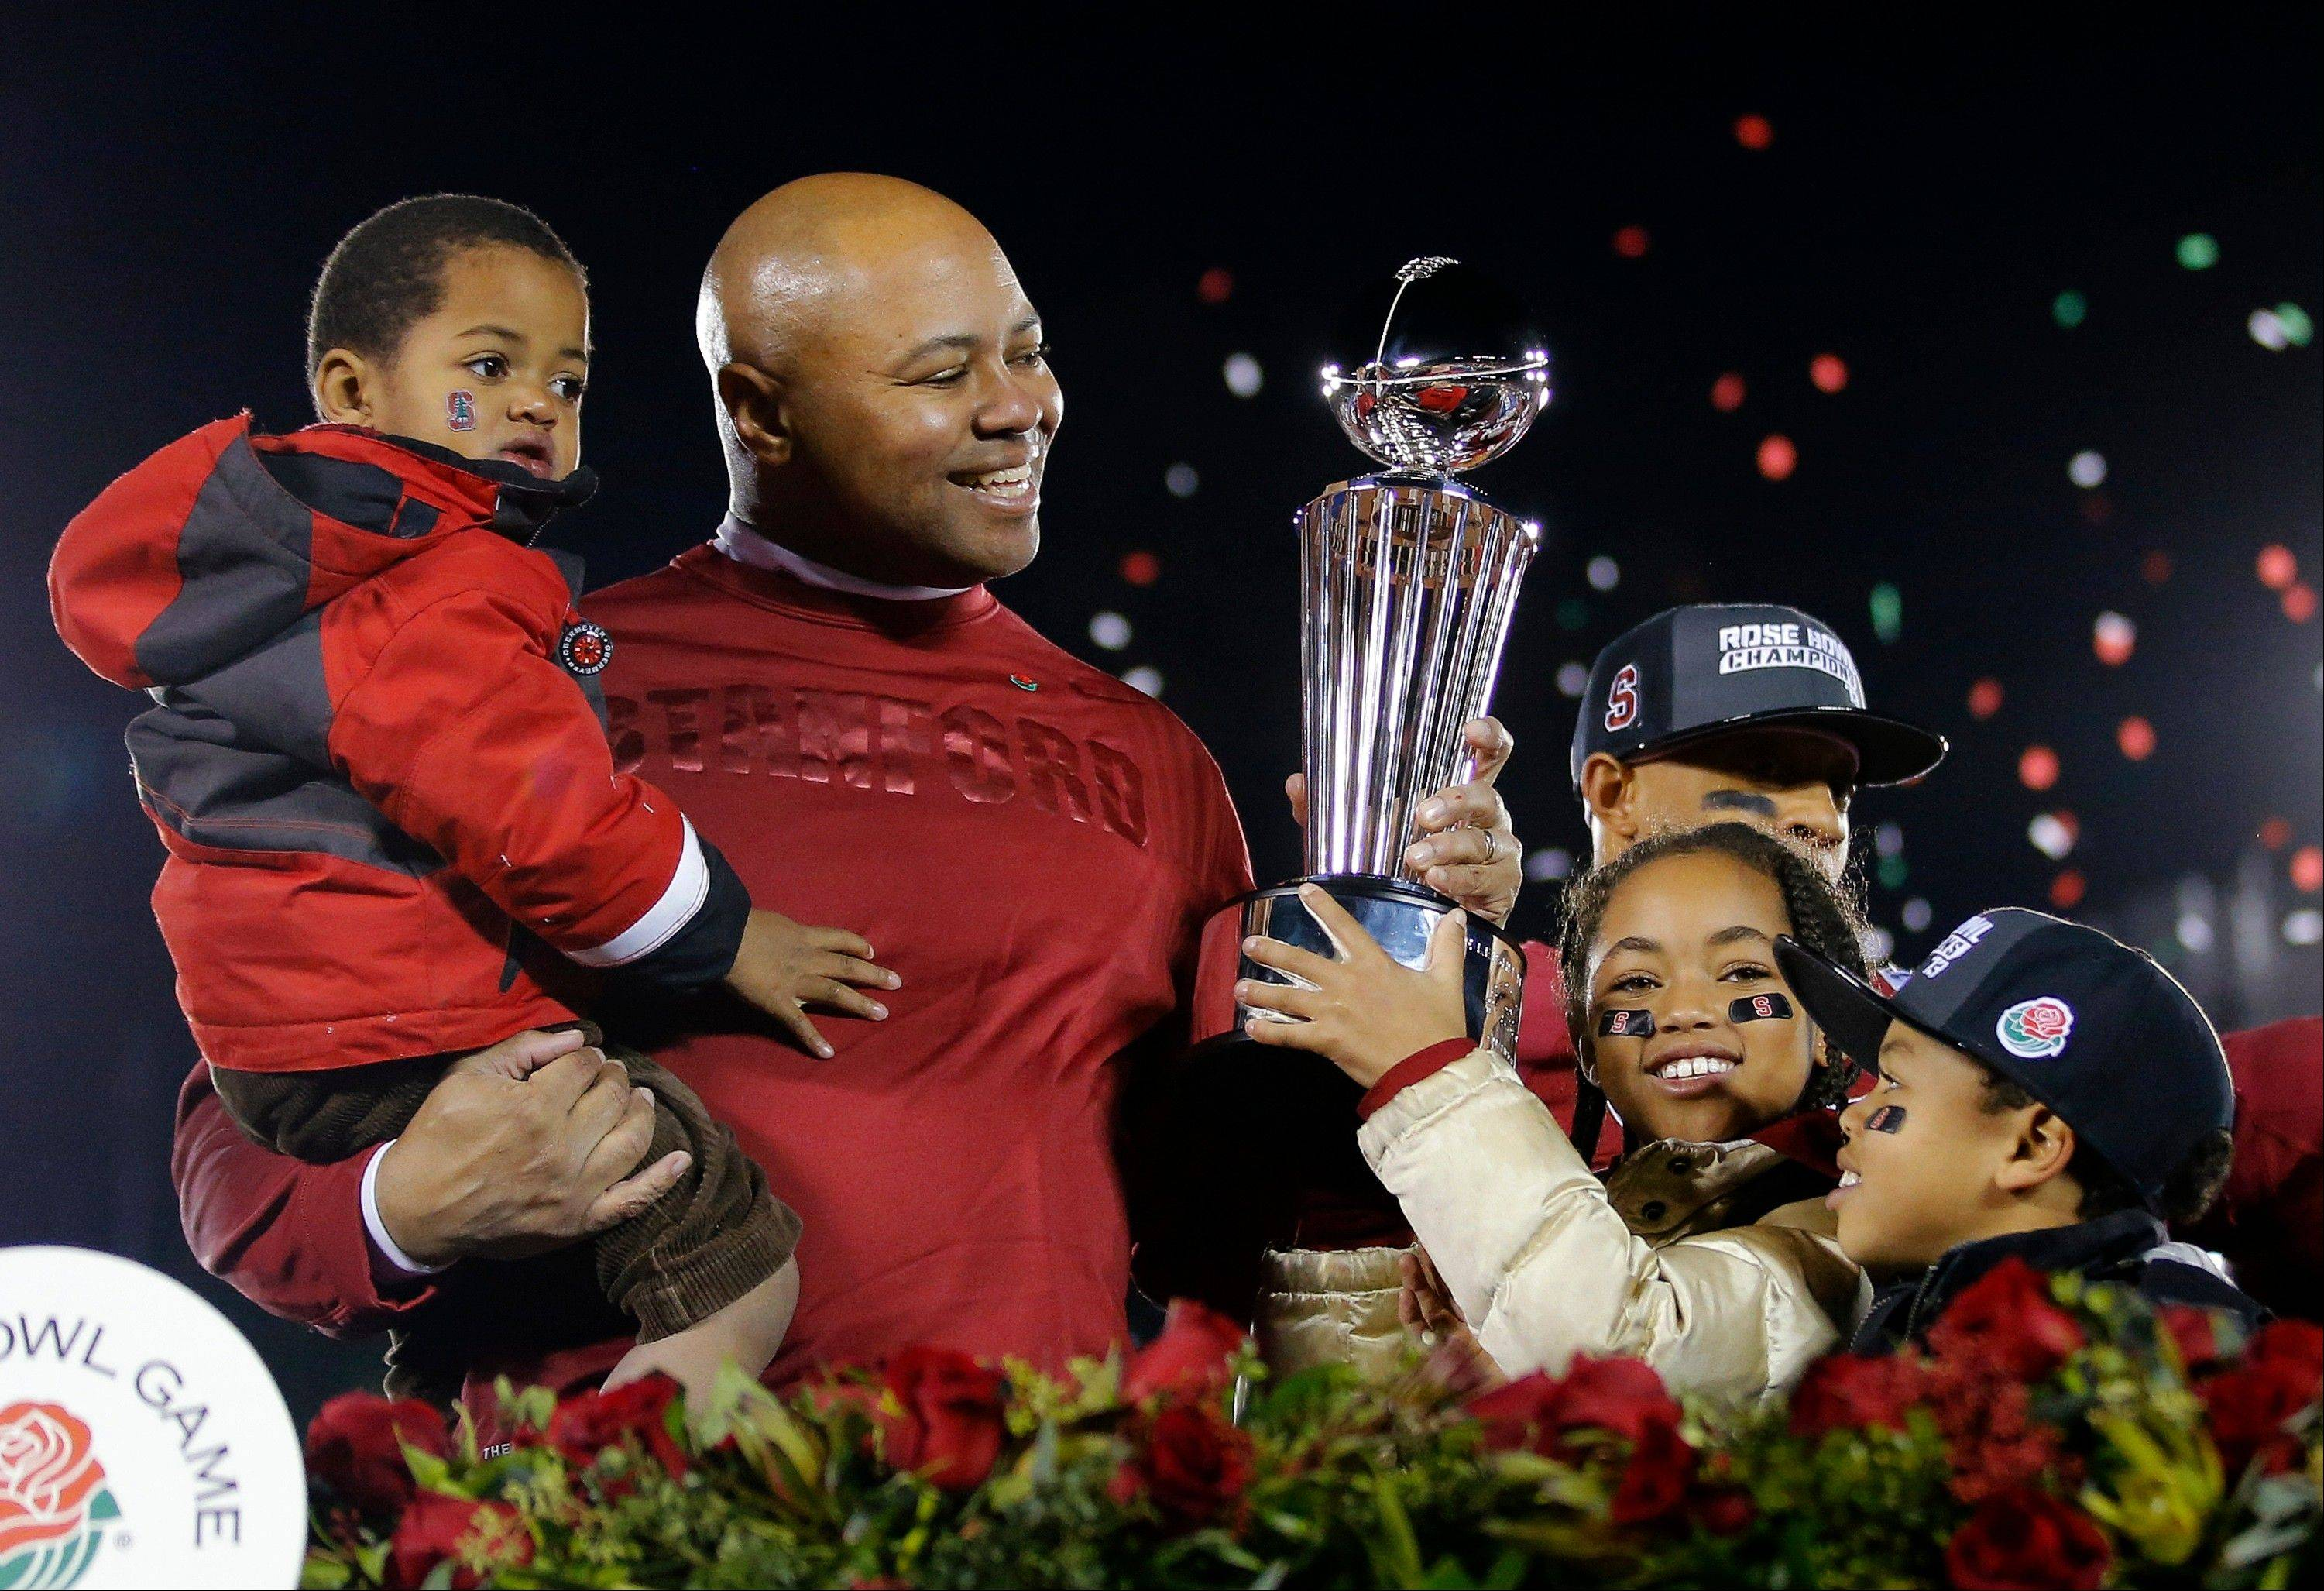 Stanford head coach David Shaw celebrates with his children following their 20-14 win over Wisconsin in the Rose Bowl NCAA college football game, Tuesday, Jan. 1, 2013, in Pasadena, Calif.